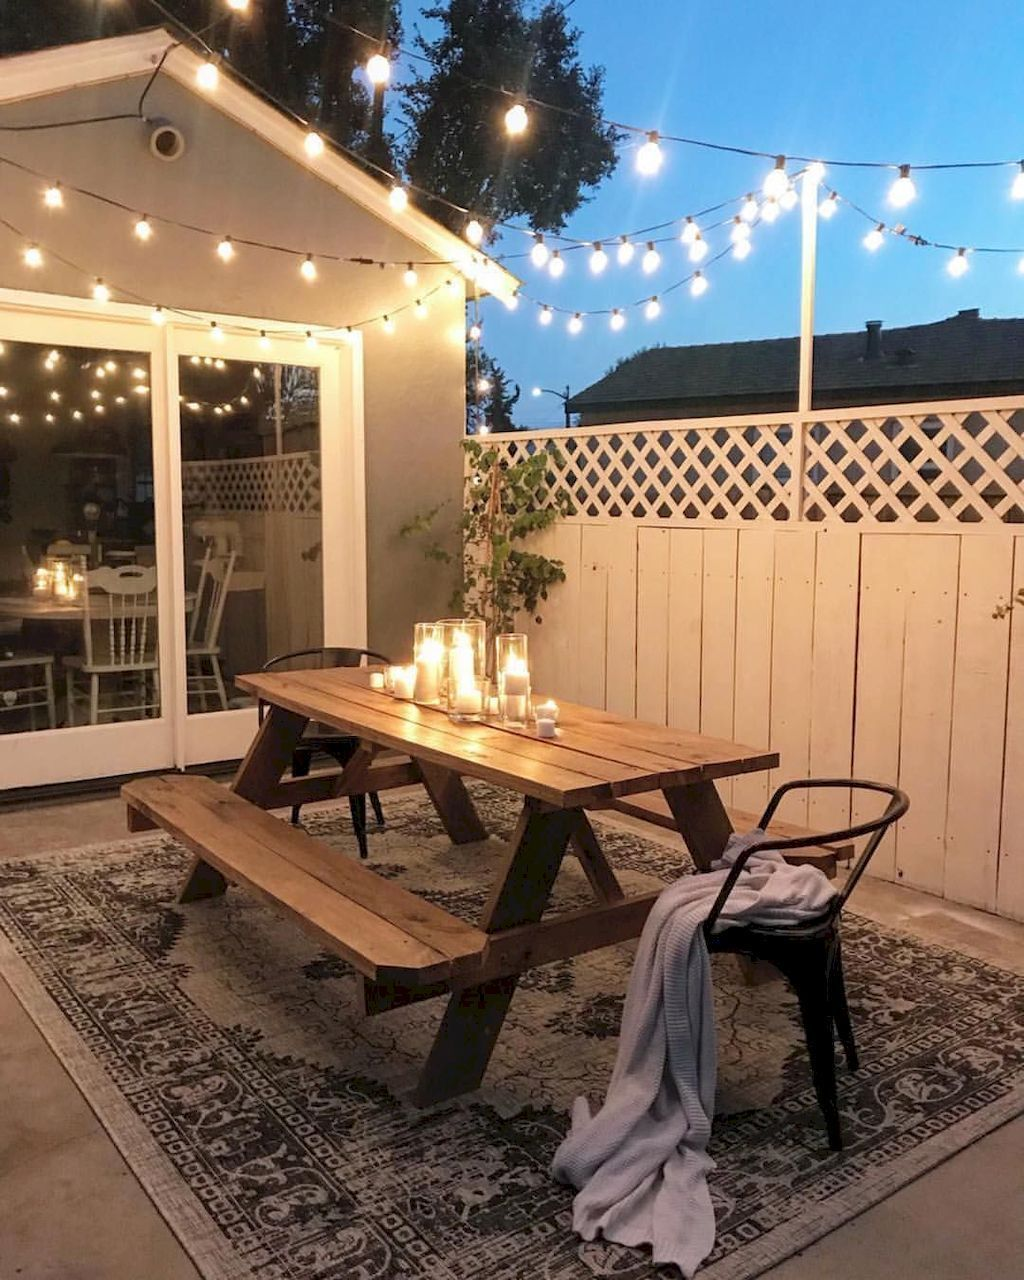 80 Awesome Small Patio on Budget Design Ideas - HomeSpecially - Small patio decorating ideas - Honorable BLog